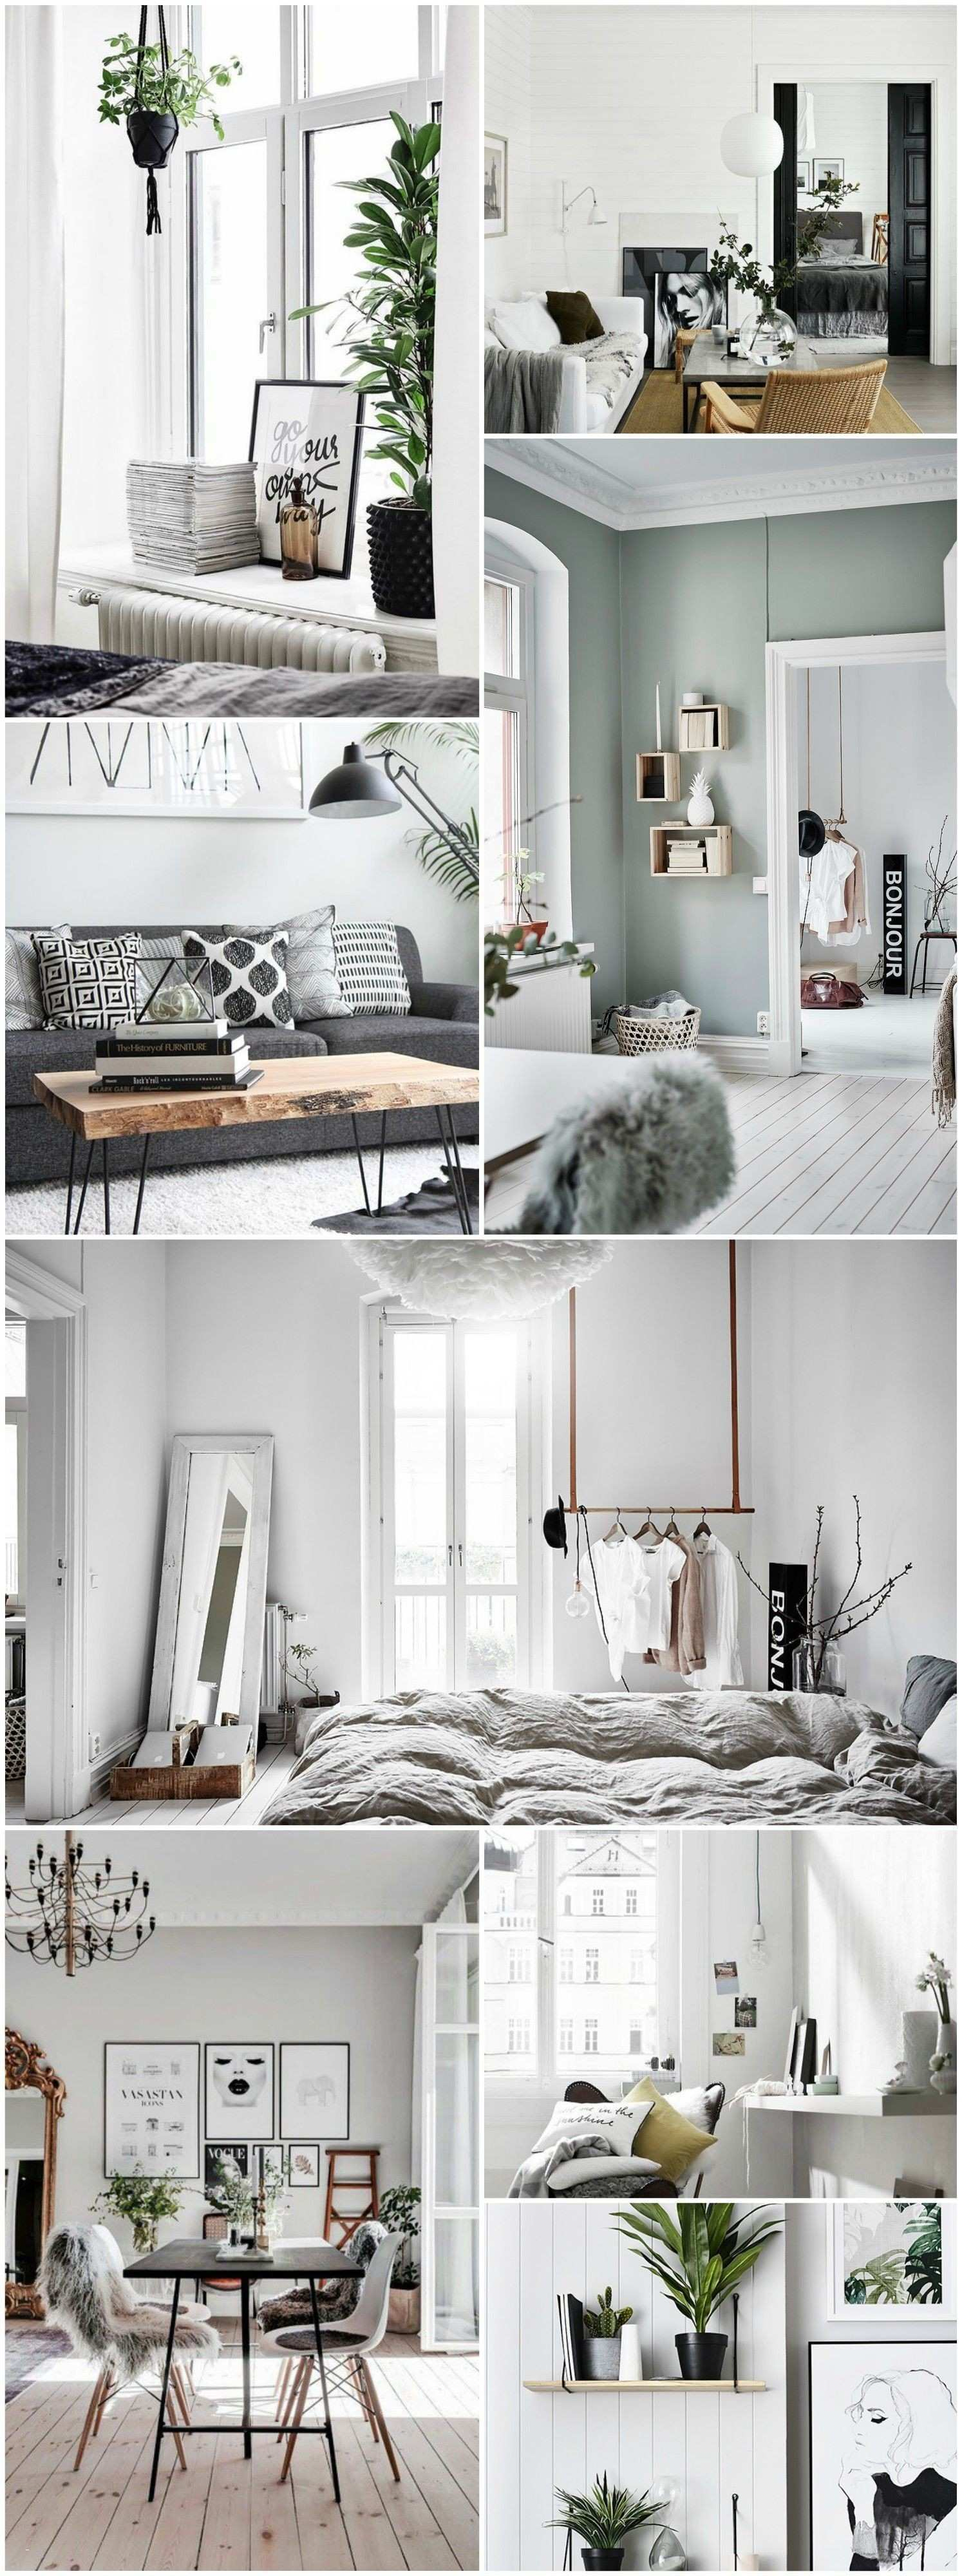 Small Room Design Ideas